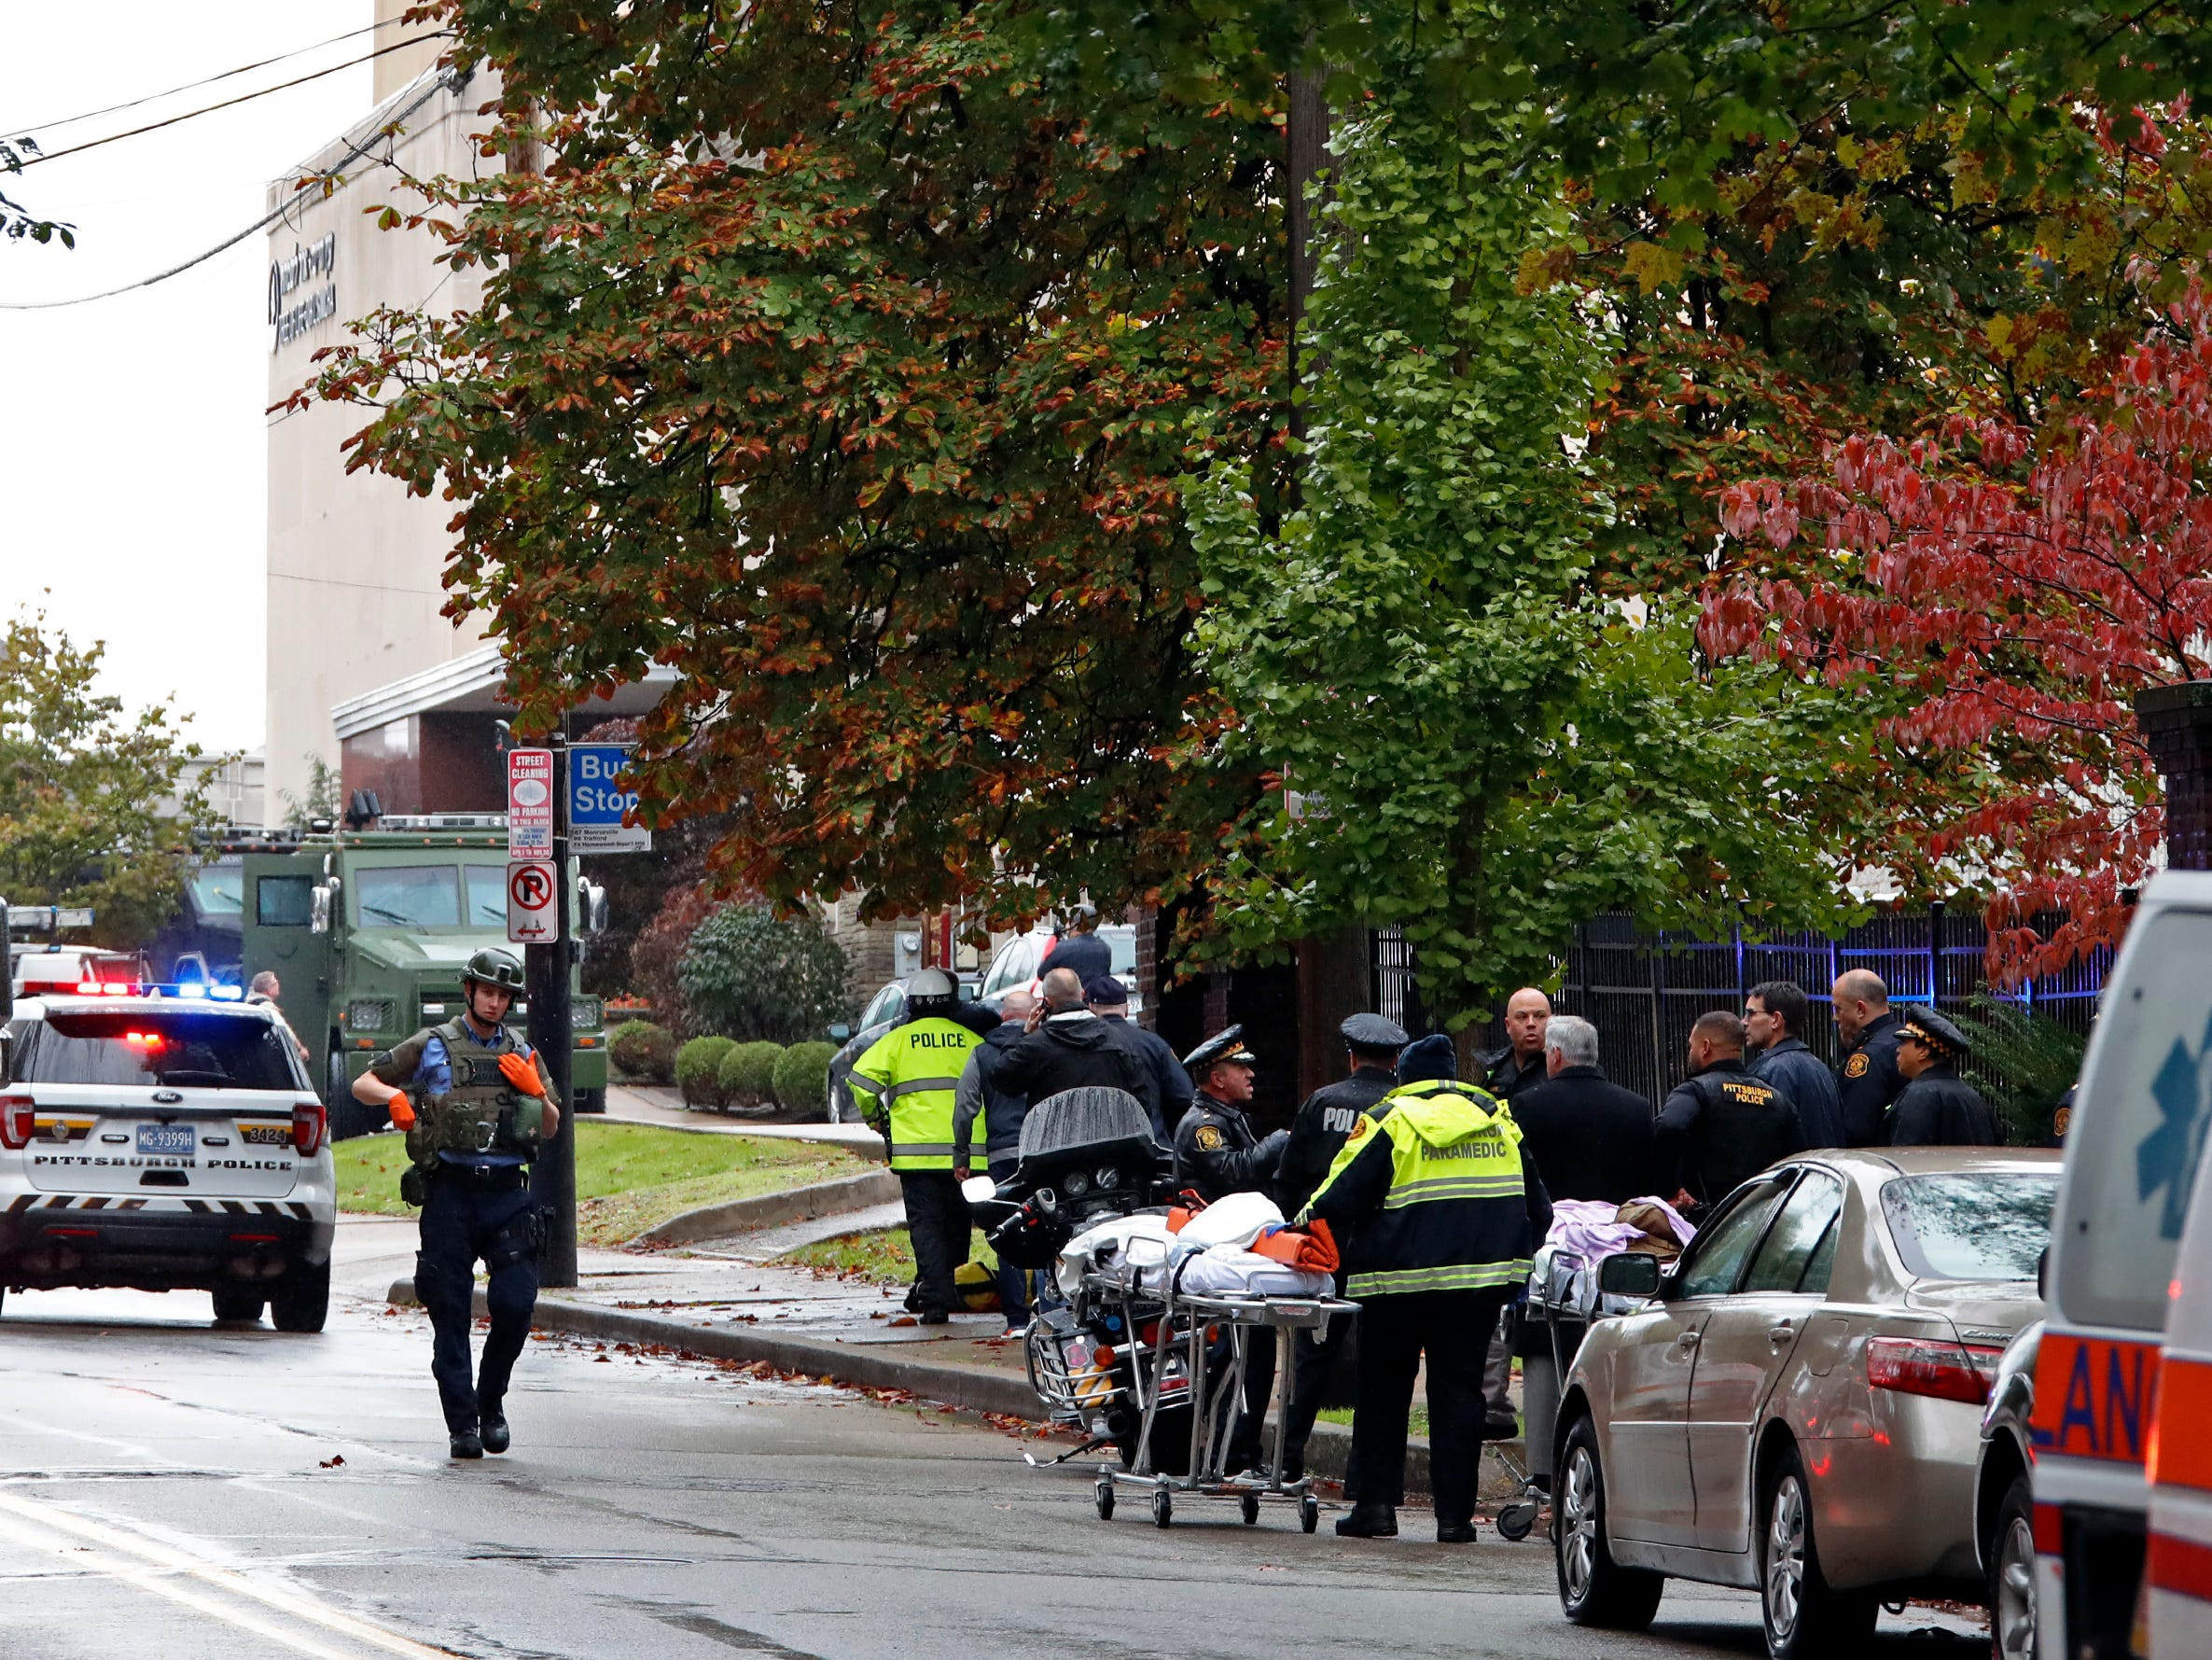 First responders surround the Tree of Life Synagogue in Pittsburgh, Pa. on Oct. 27, 2018.